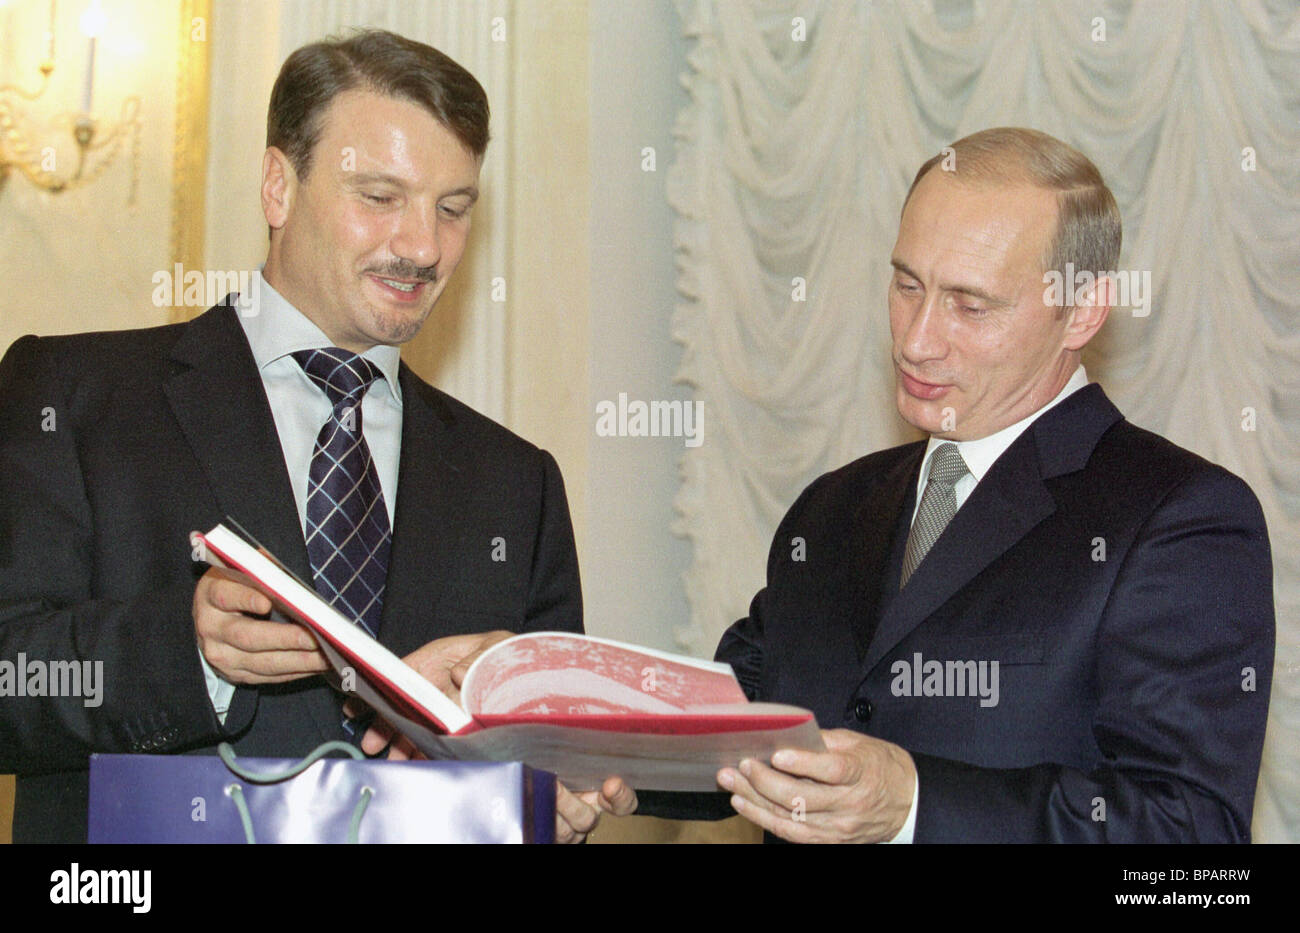 Putin and Gref at a meeting in the Kremlin. - Stock Image